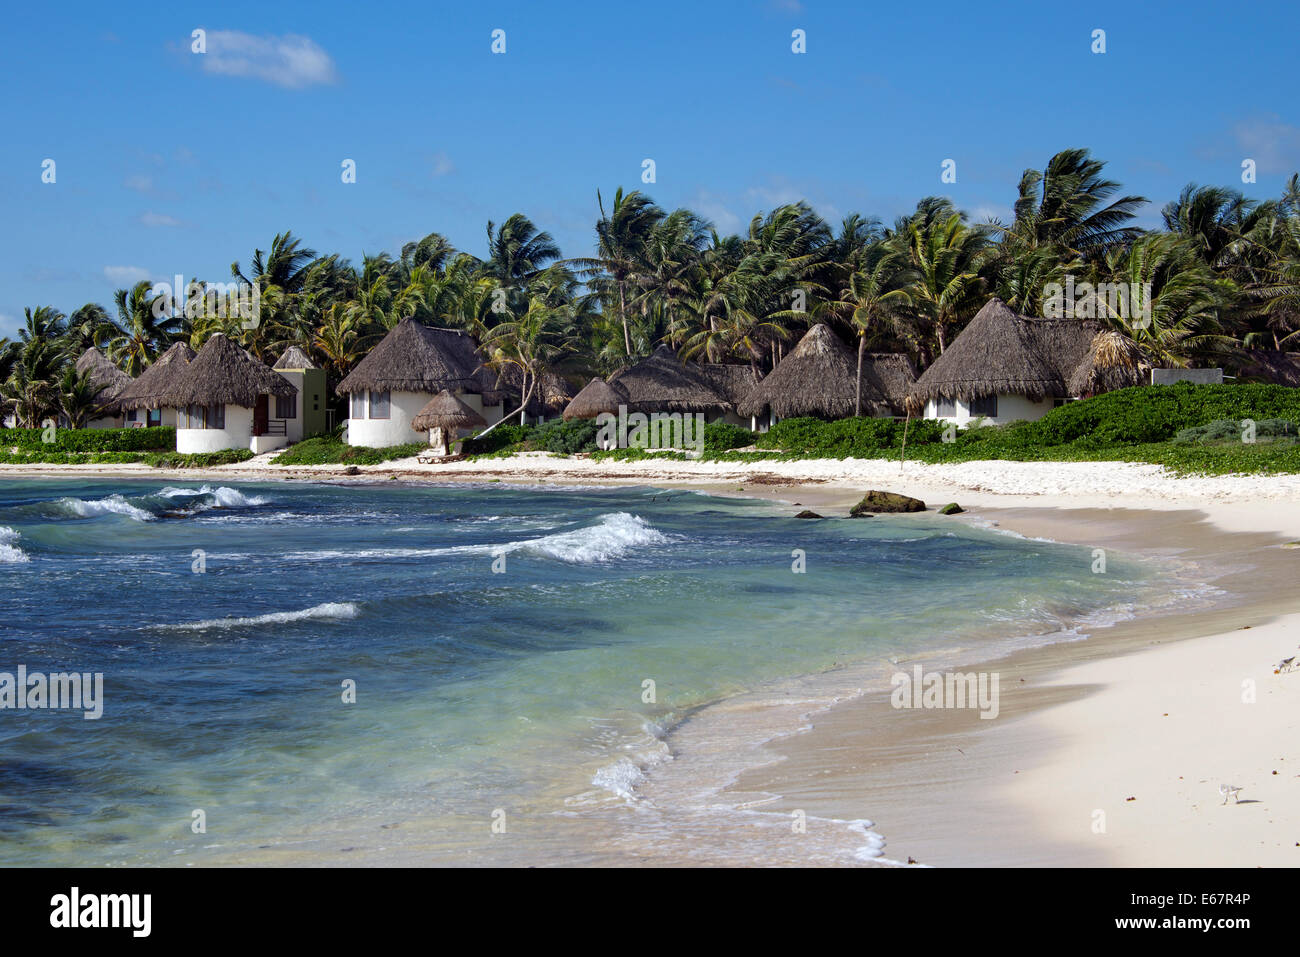 Rondavels on beach Turtle Bay Tulum Yucatan Mexico - Stock Image